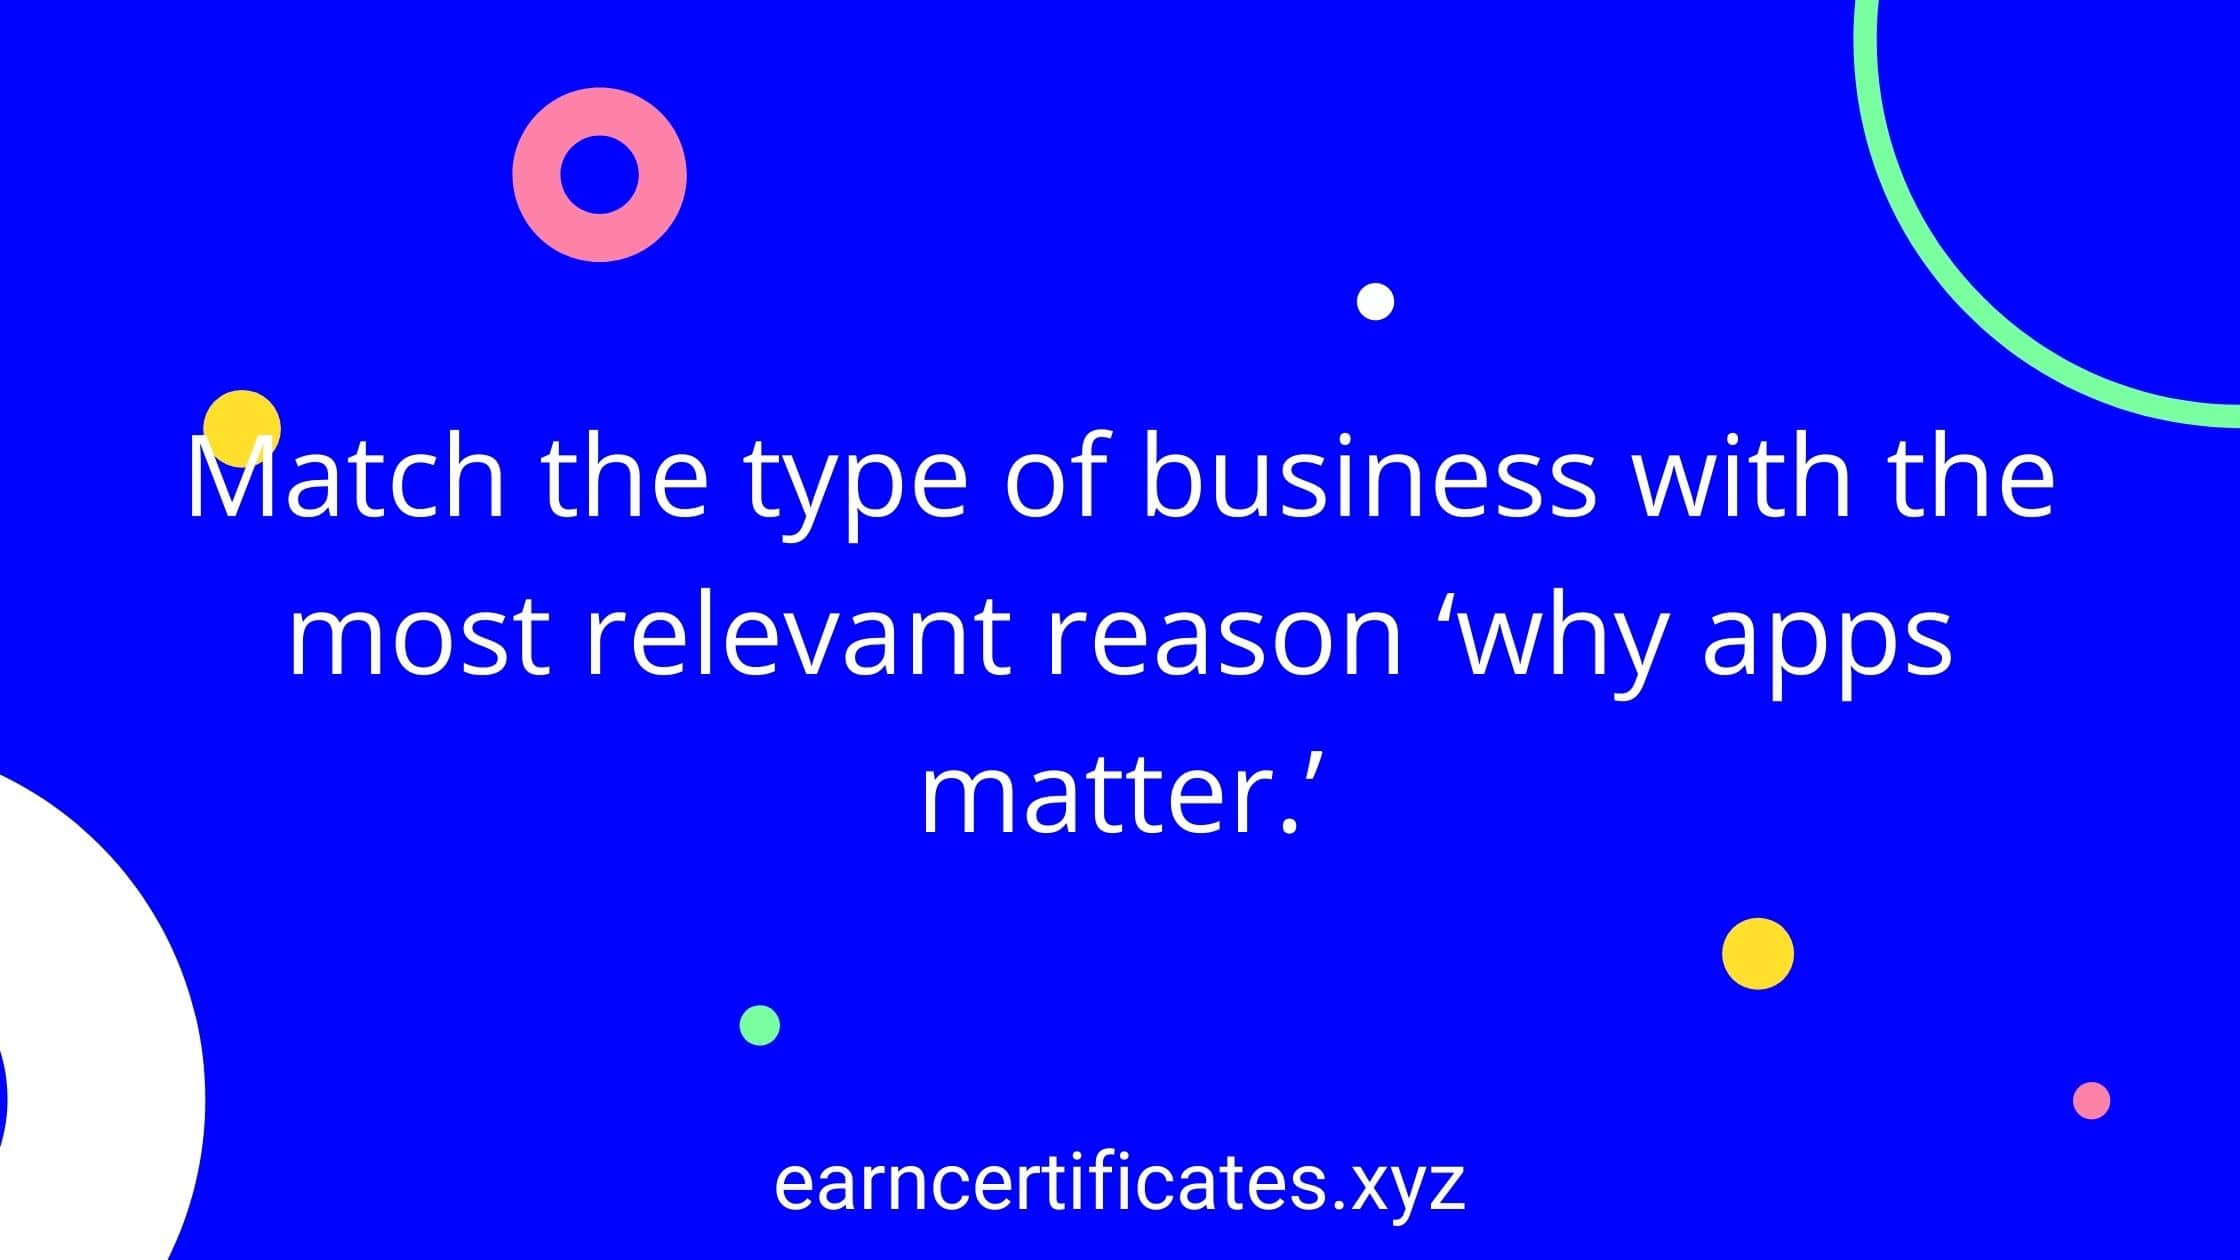 Match the type of business with the most relevant reason 'why apps matter.'